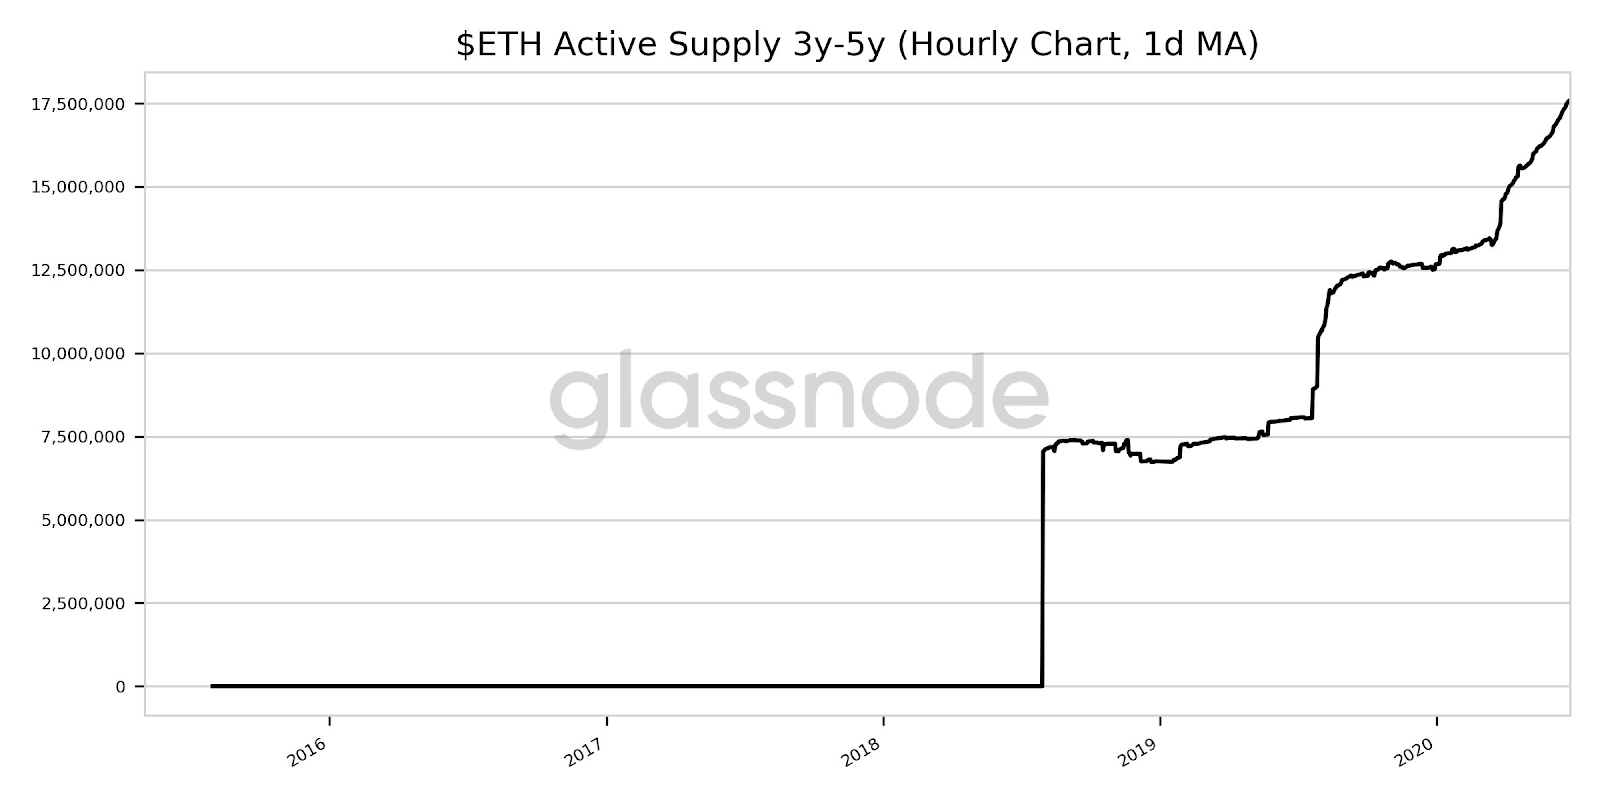 ETH Active Supply 3y-5y